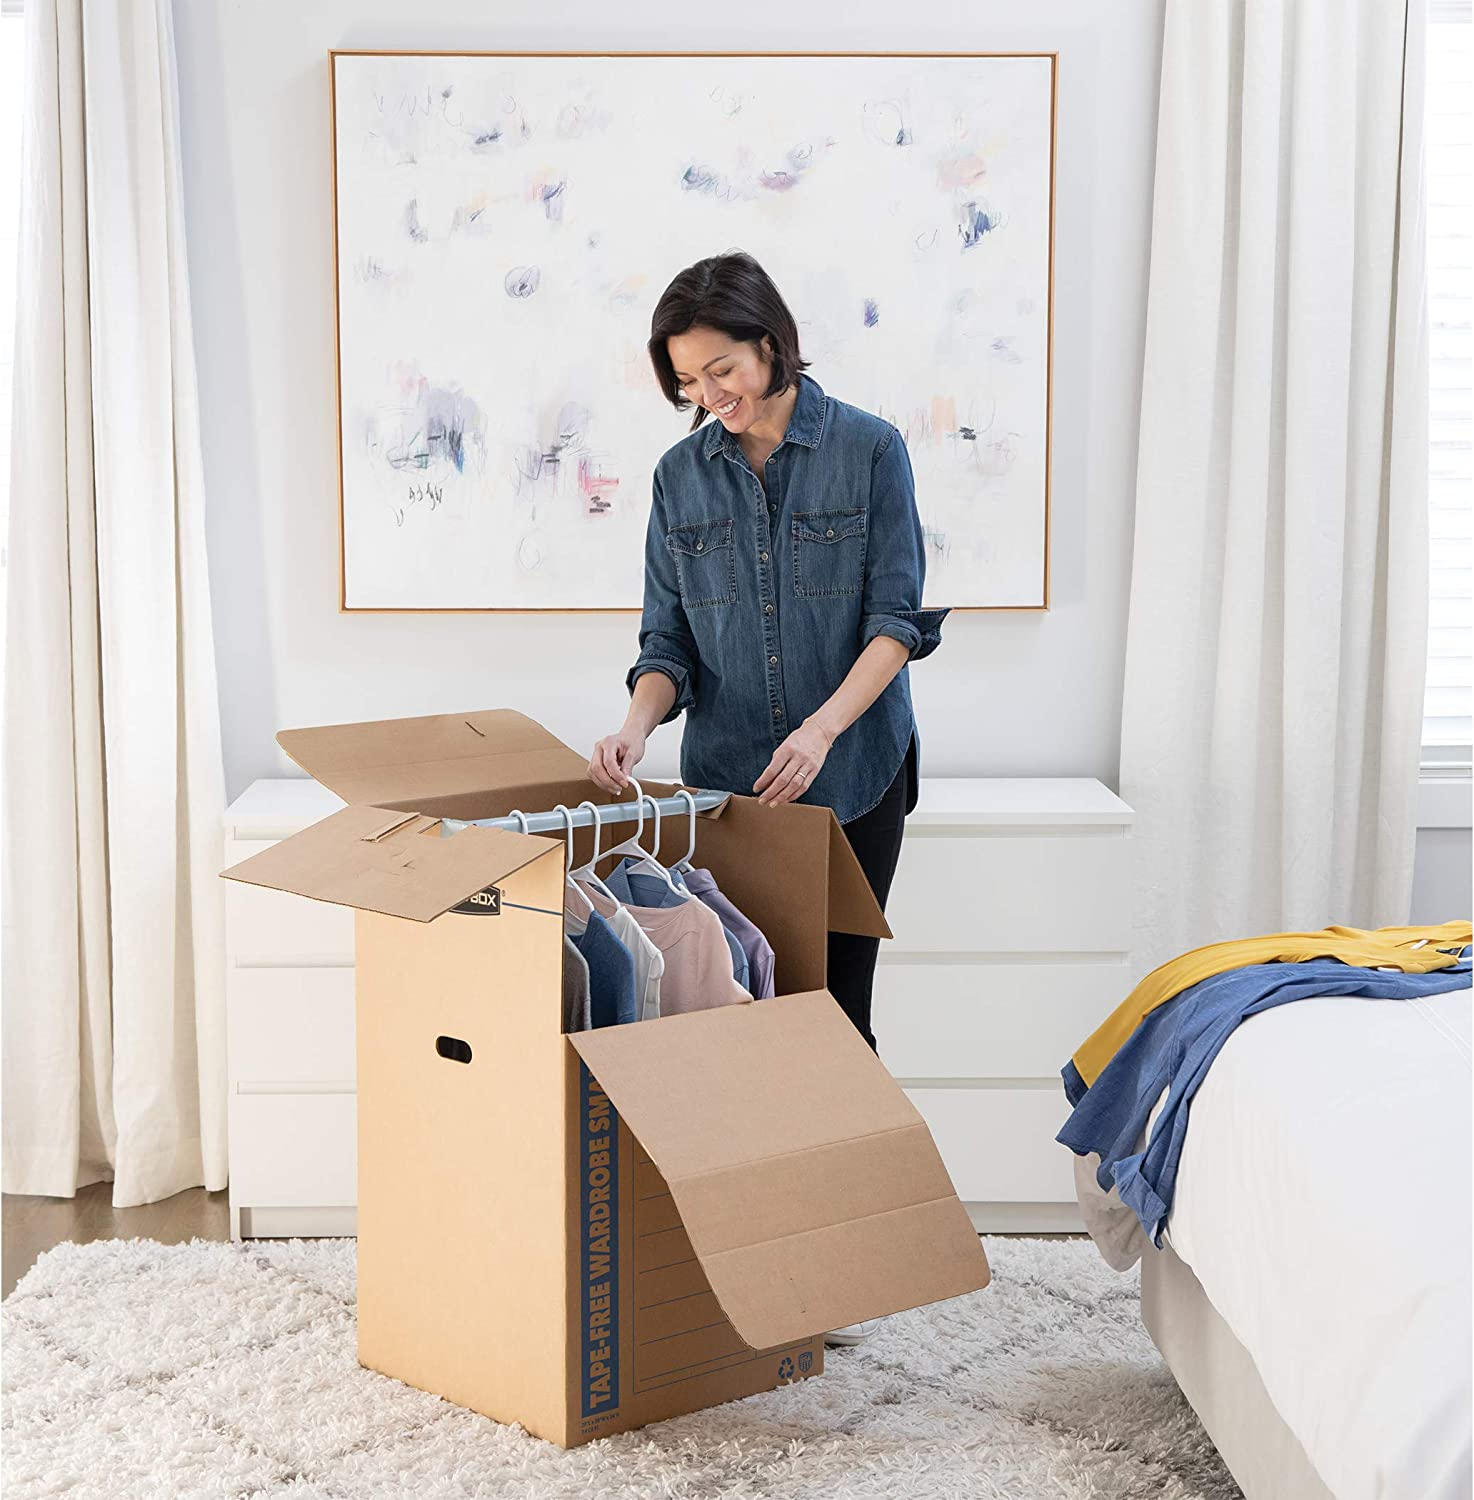 20 x 20 x 34 Inches 3 Pack Short 5 Sets 7710902 Bankers Box SmoothMove Wardrobe Moving Boxes